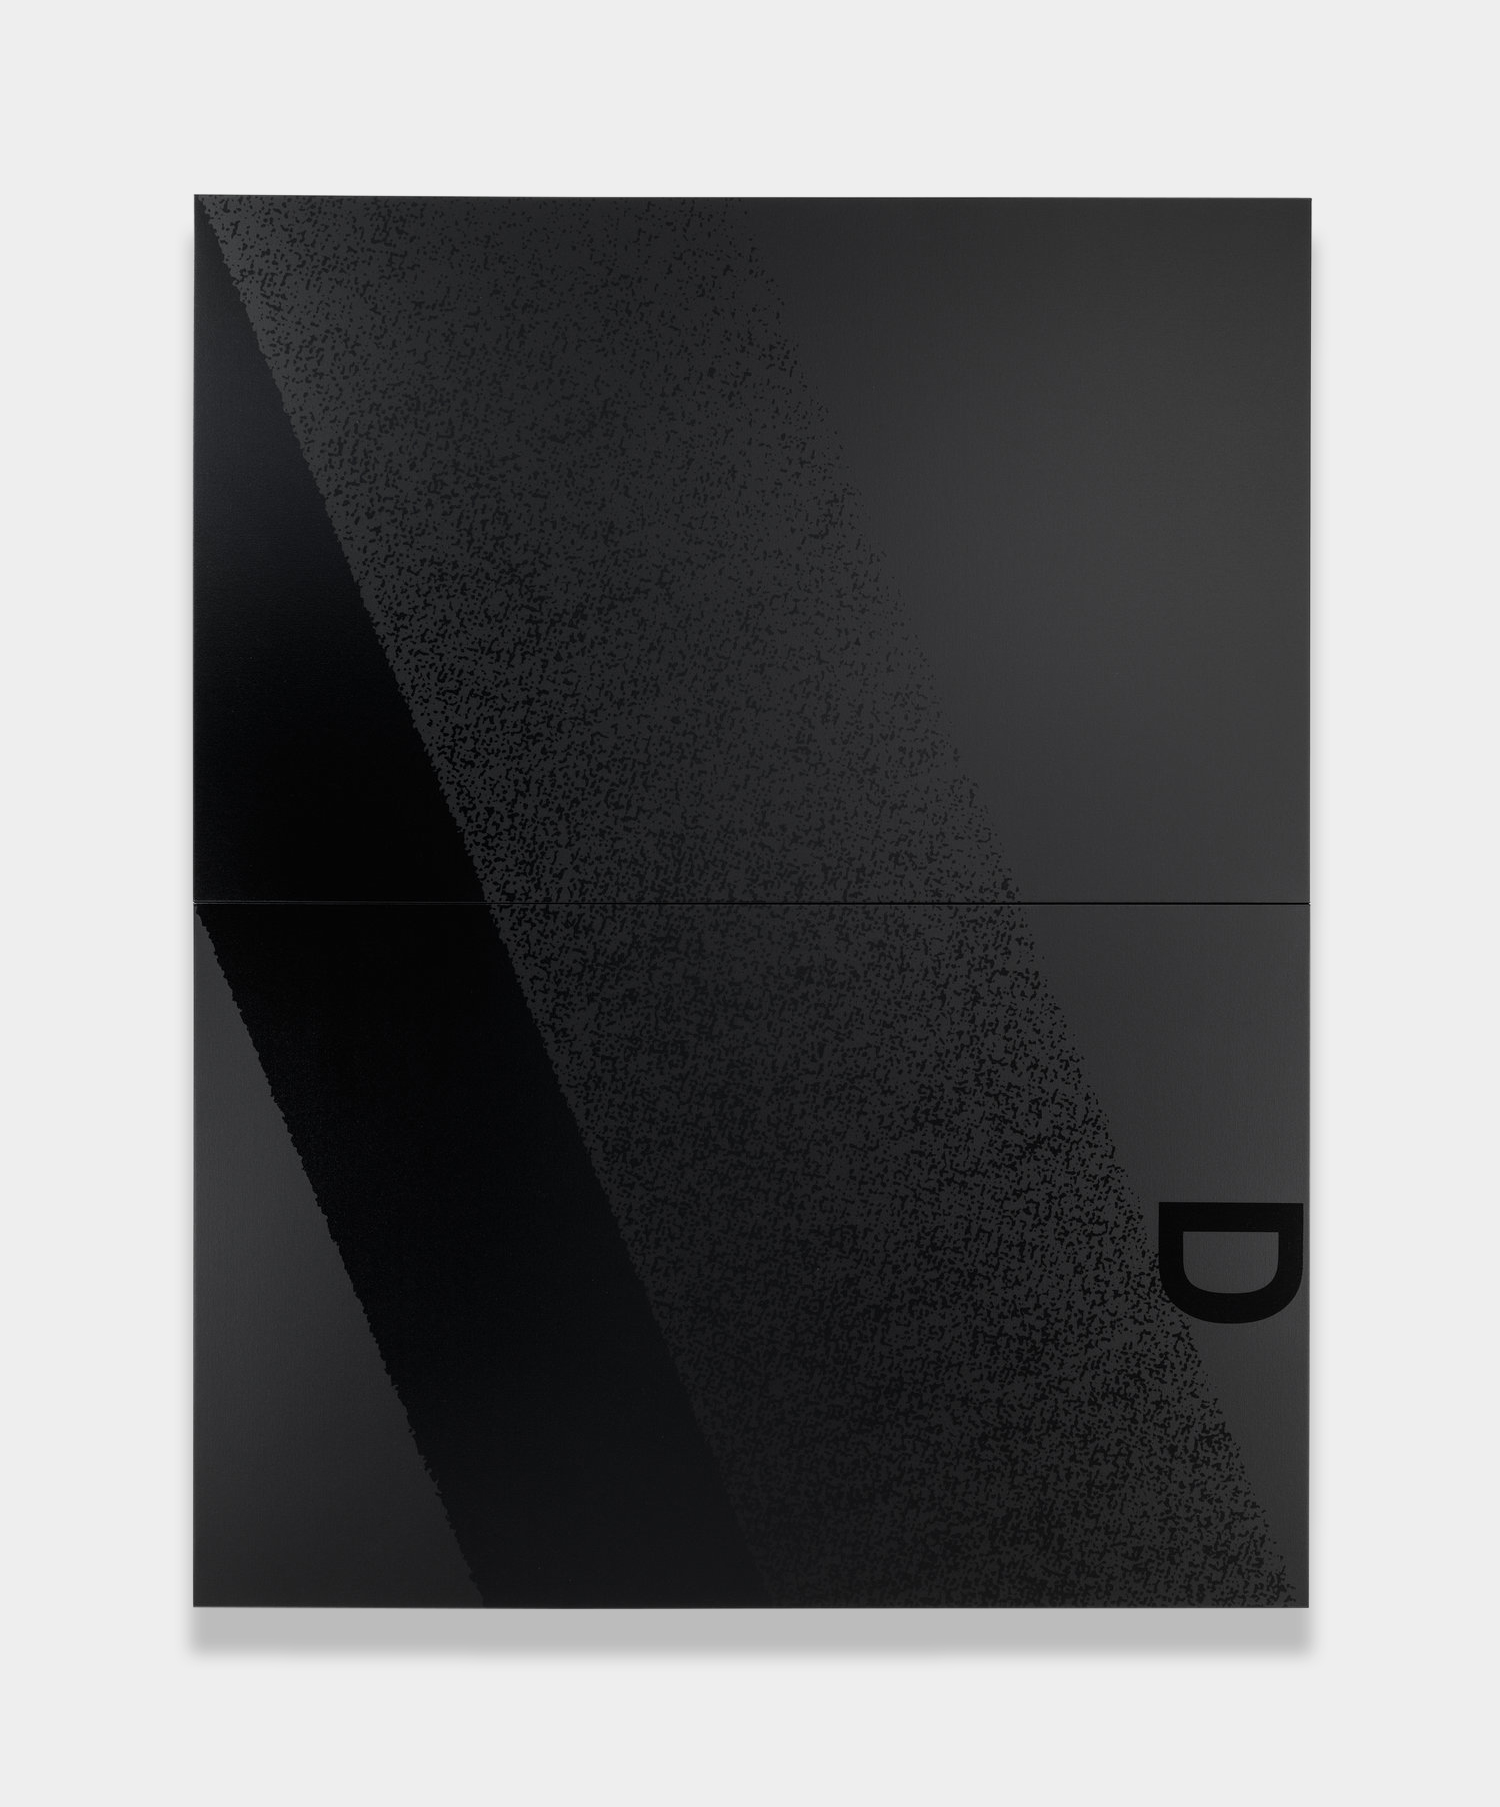 Adam Pendleton  Black Dada (D)  2012 Silkscreen ink on canvas Two panels; 96h x 76w x 1 1/2d in, overall